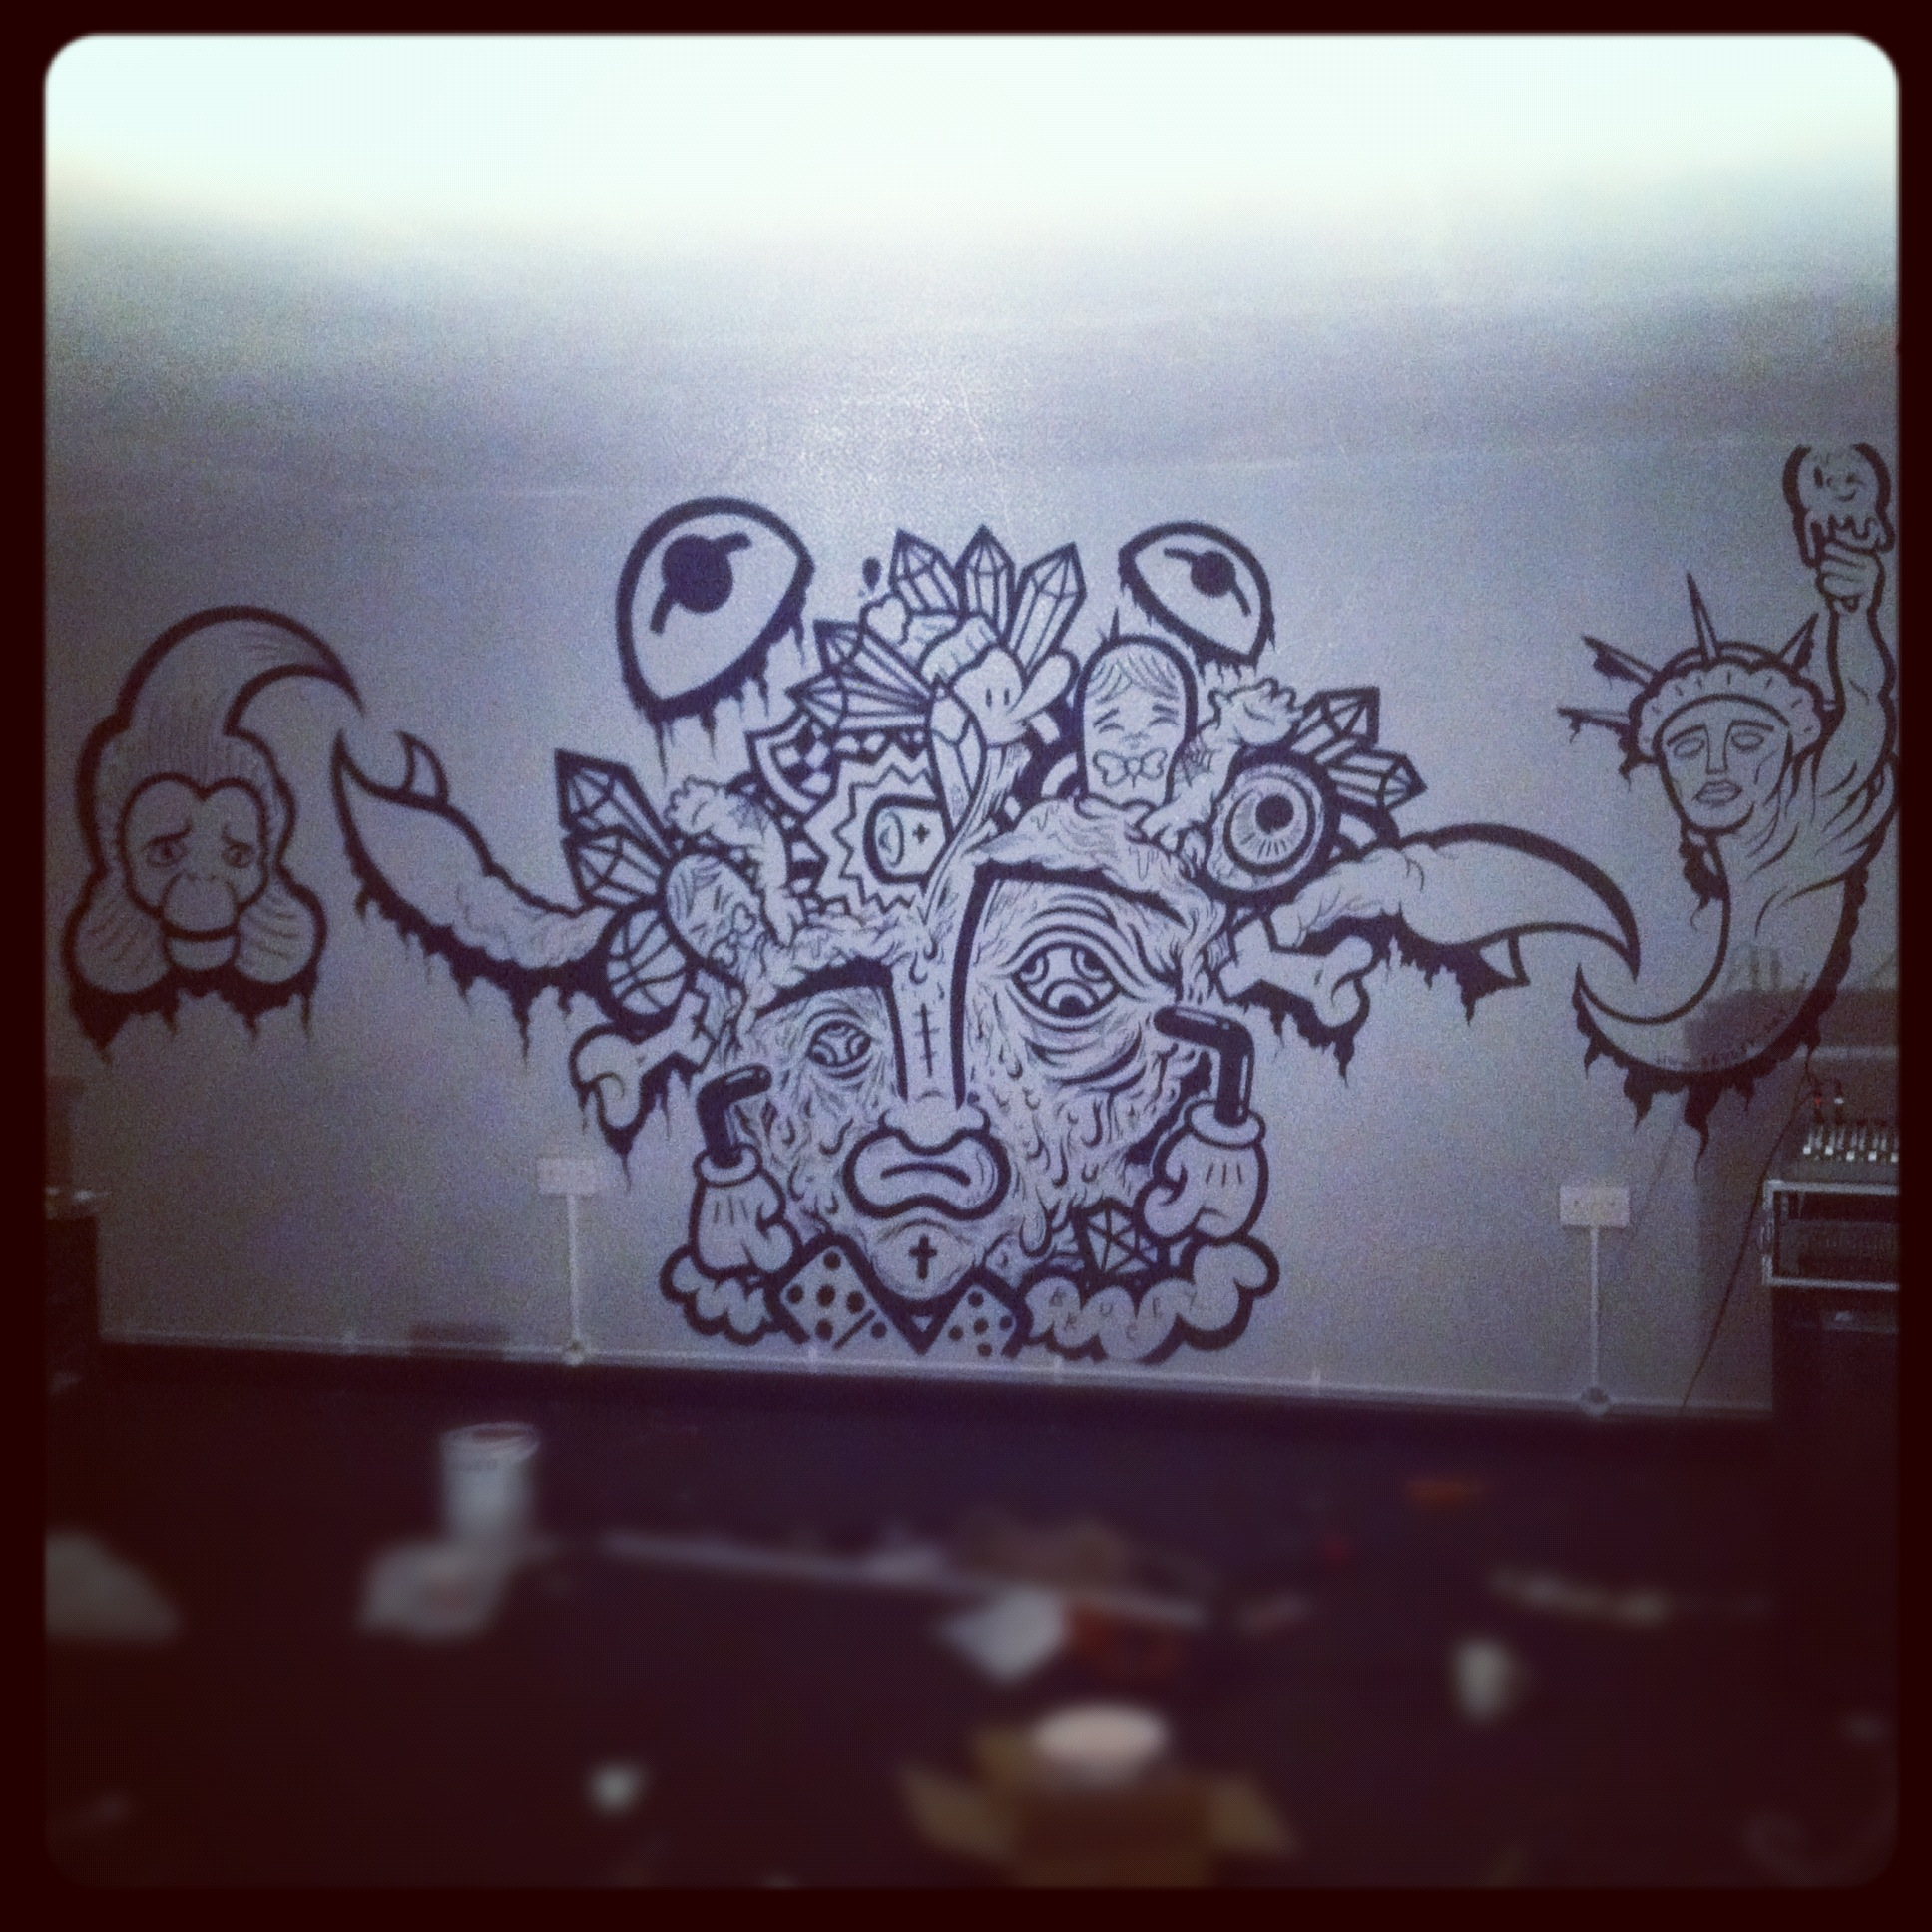 Room Wall Drawings Brucey Wall Drawing in